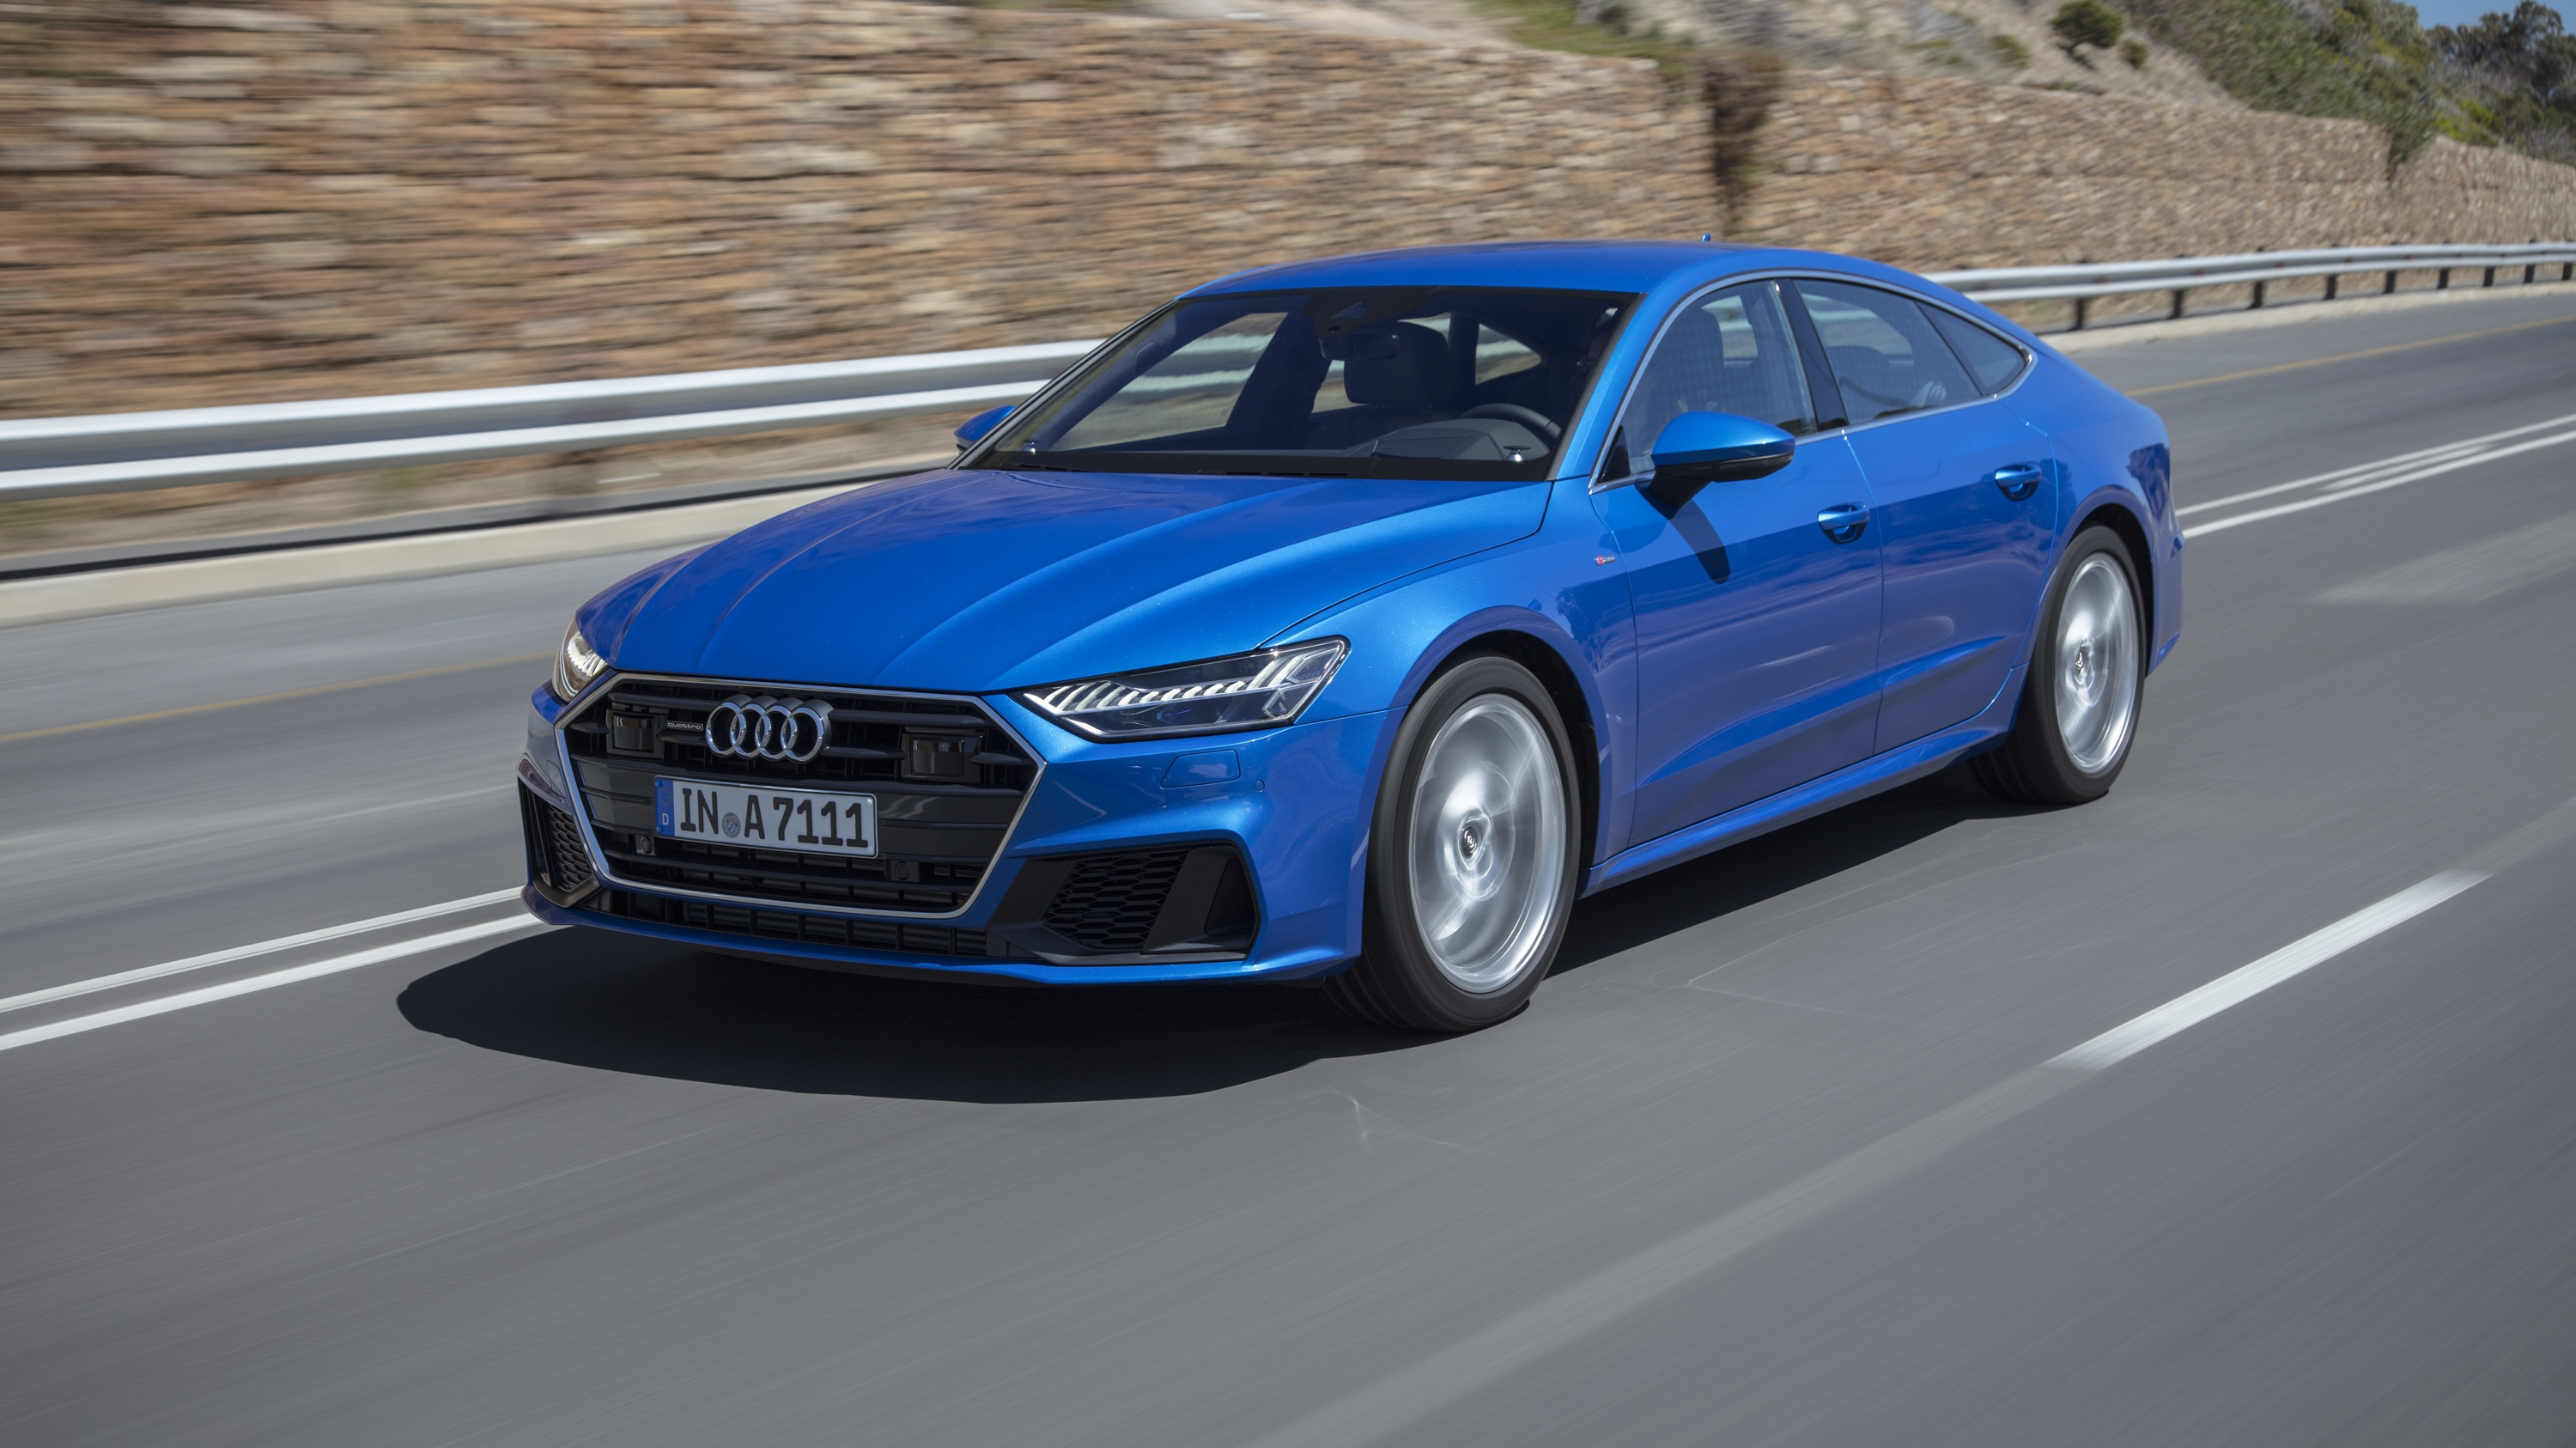 Audi A7 Reviews, Specs, Prices, Photos And Videos | Top Speed. »